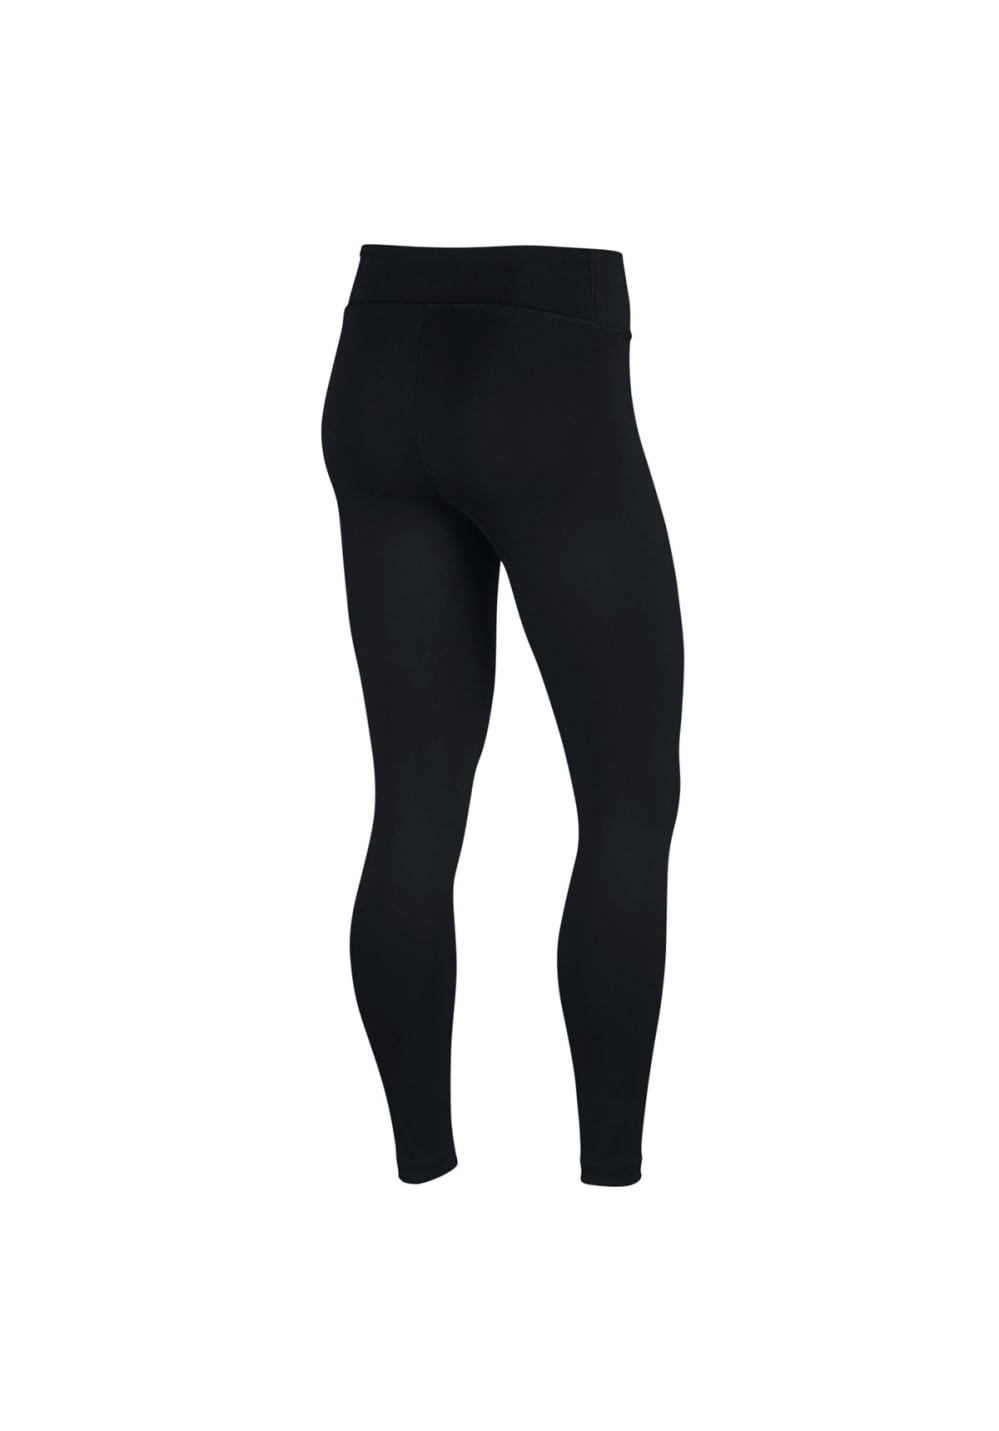 21run Nike Tights Fitness Power Women For Training Black Trousers w86qUwB